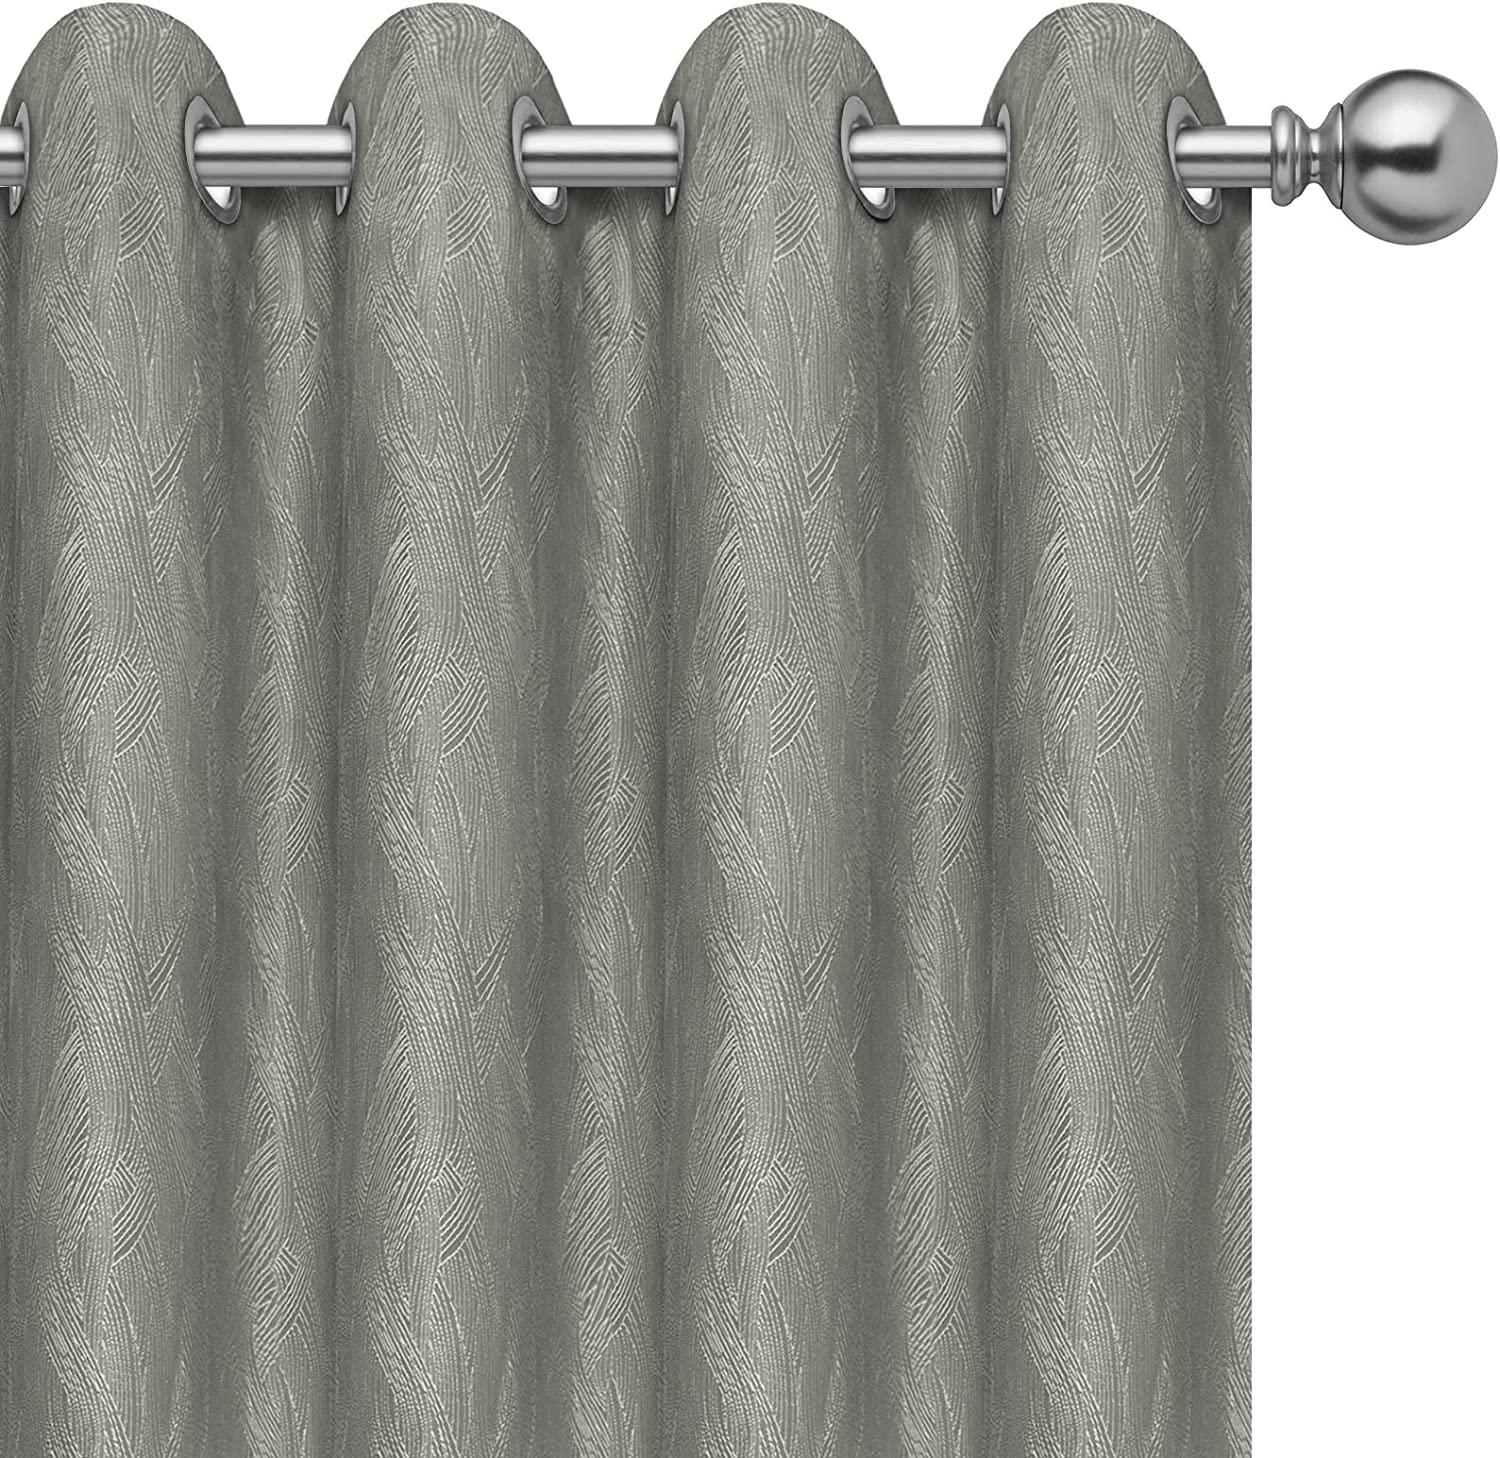 PureFit Jacquard Blackout Curtains for Bedroom, Room Darkening Thermal Insulated Grommet Window Curtains for Living Room with Thermal Liner, Gray, 52 x 84 inch Length, Set of 2 Curtain Panels